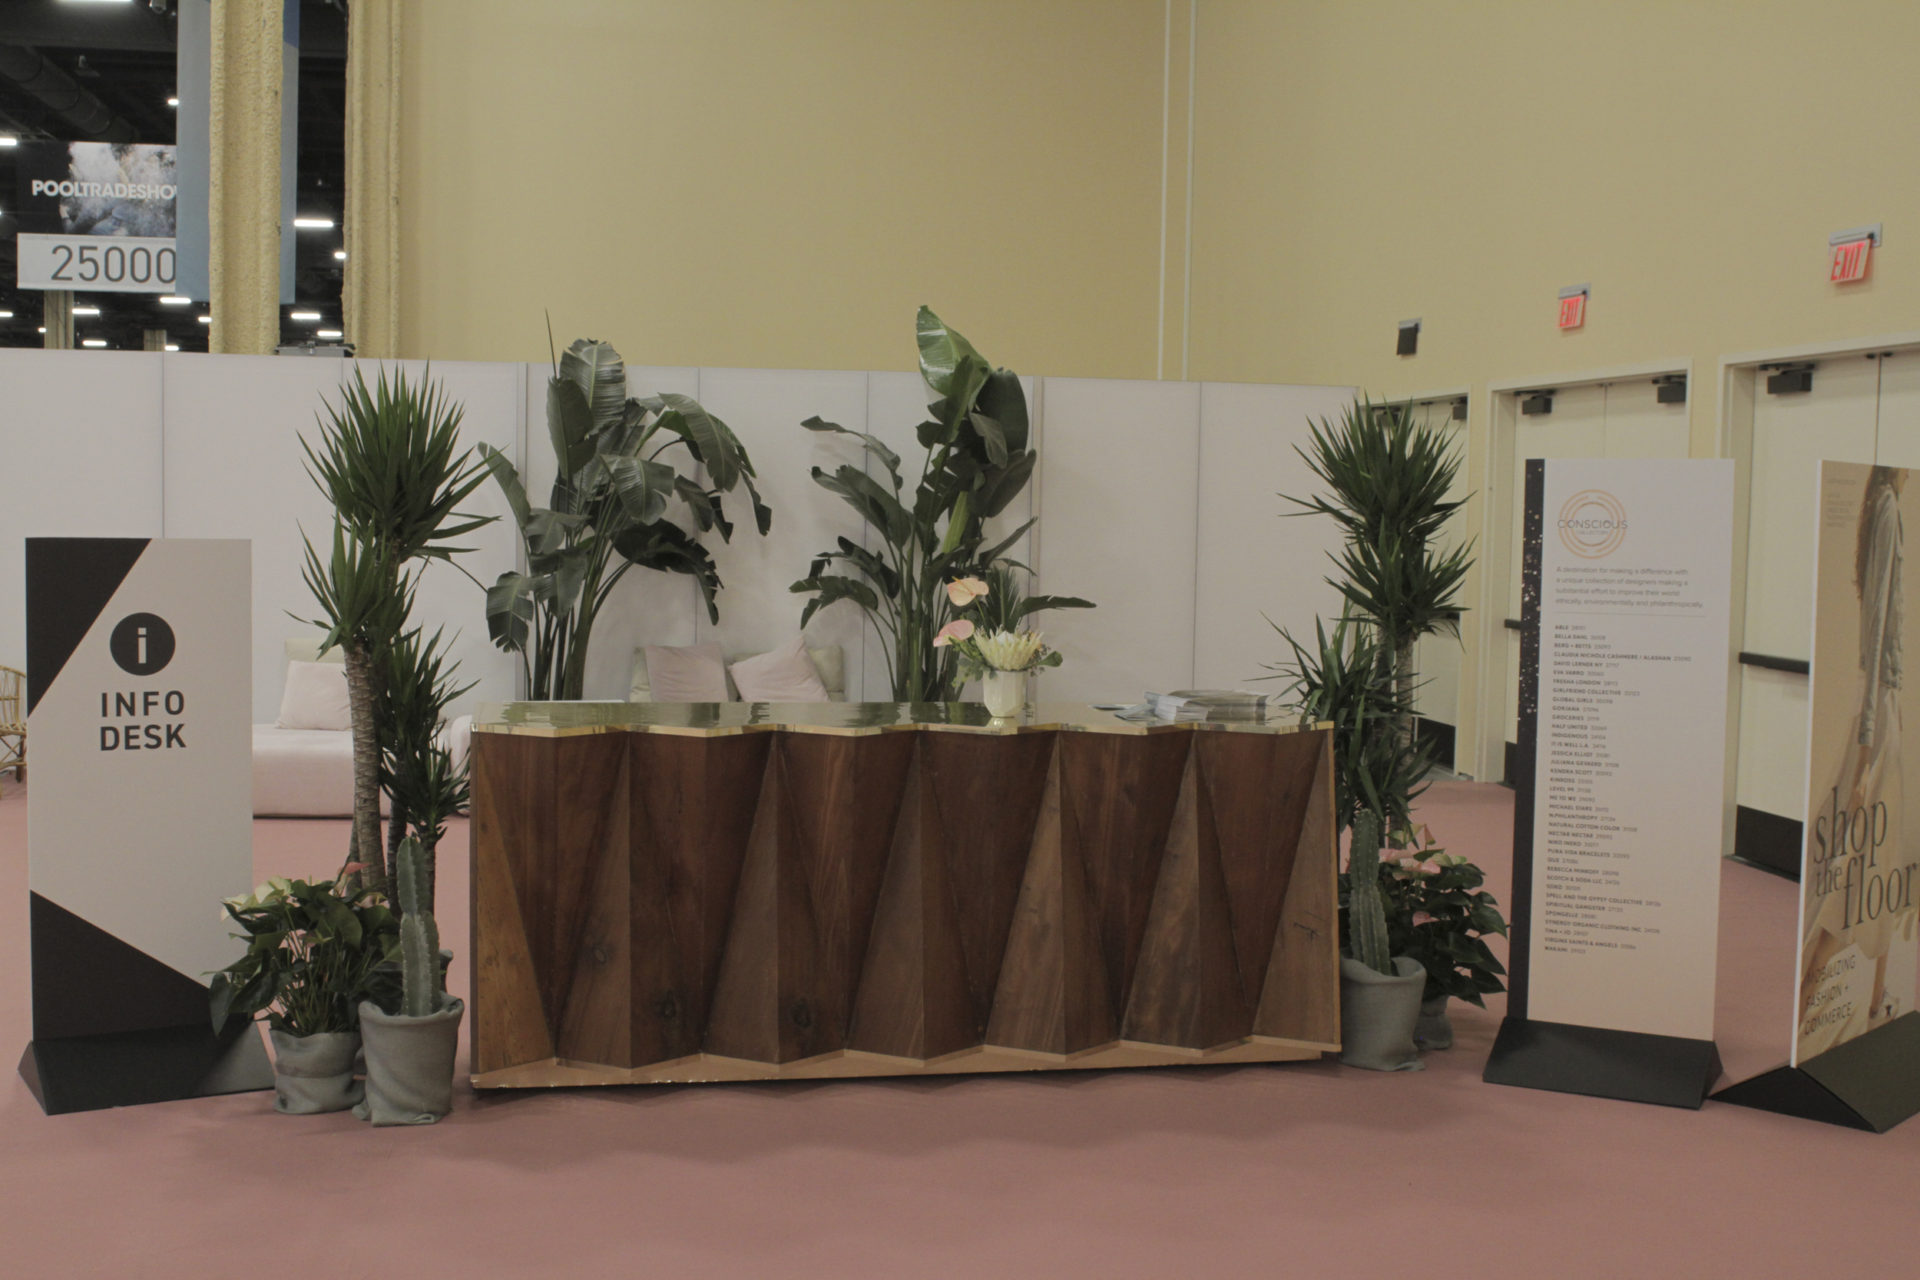 Info desk surrounded by beautiful plants rented for a trade show.